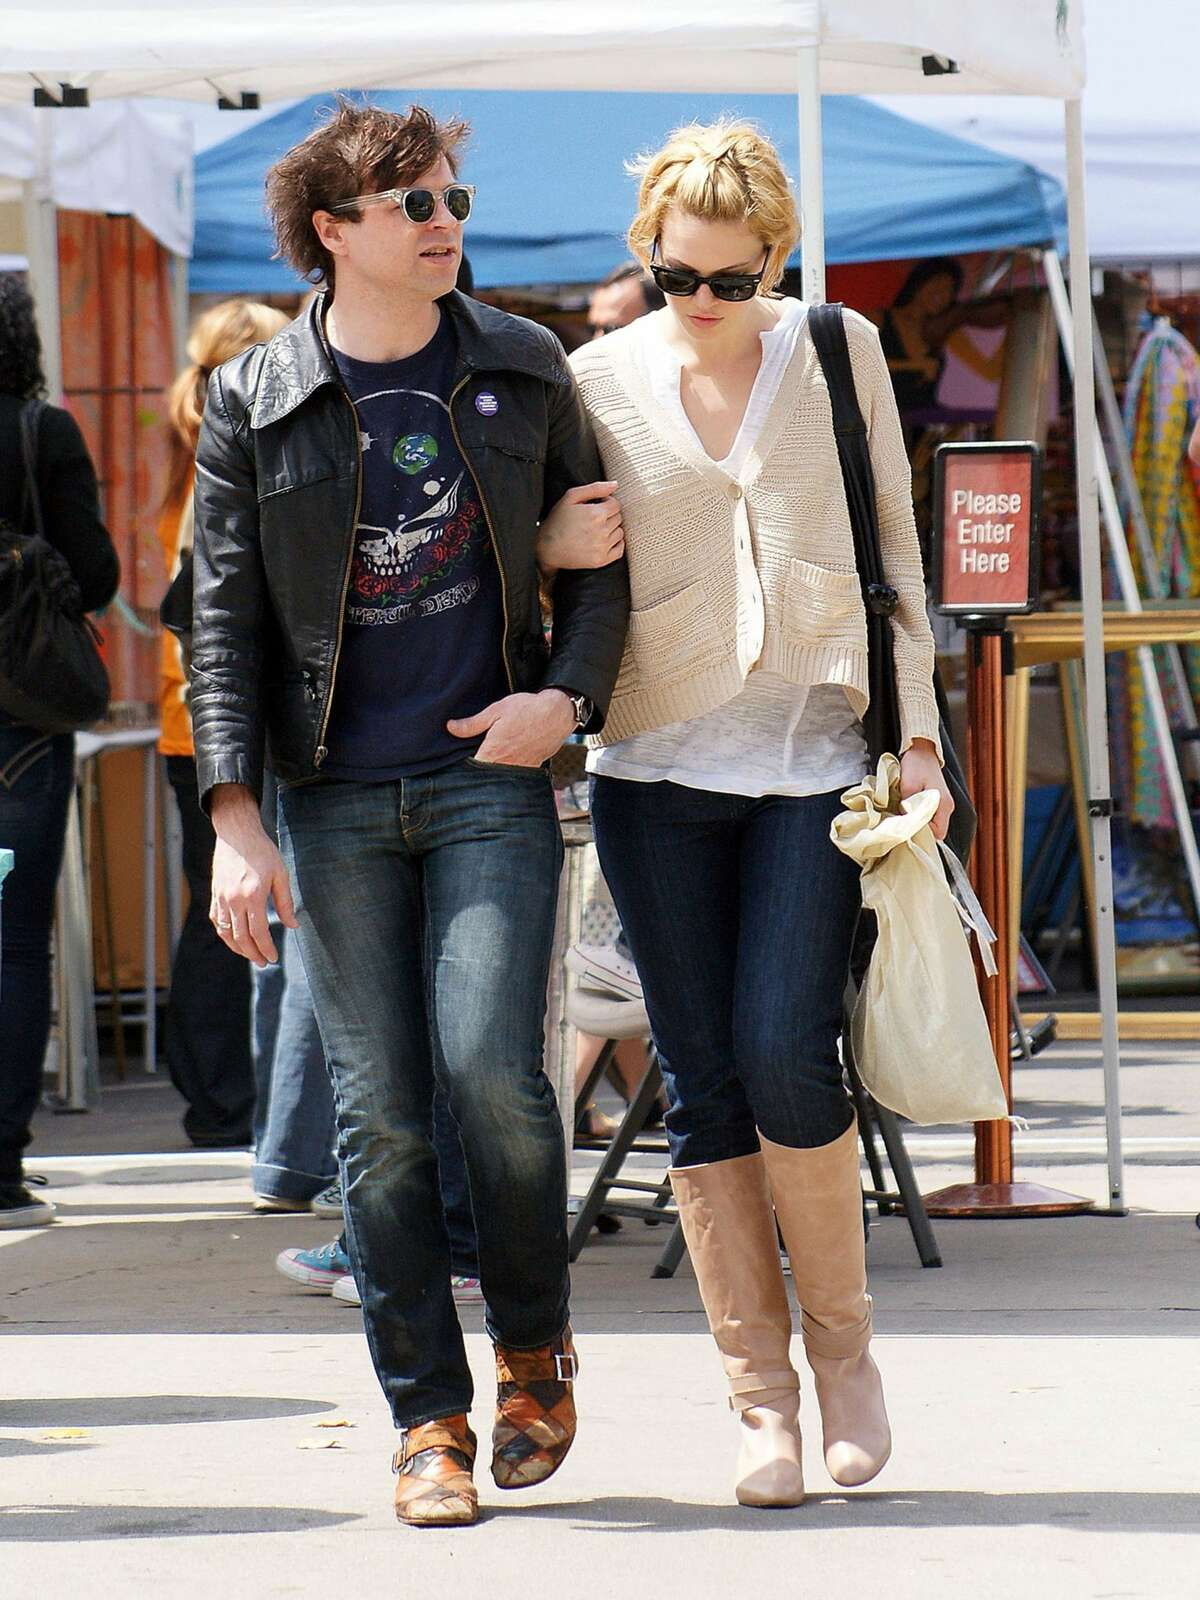 Ryan Adams and Mandy Moore sighting at the flea market on March 29, 2009 in West Hollywood, California.